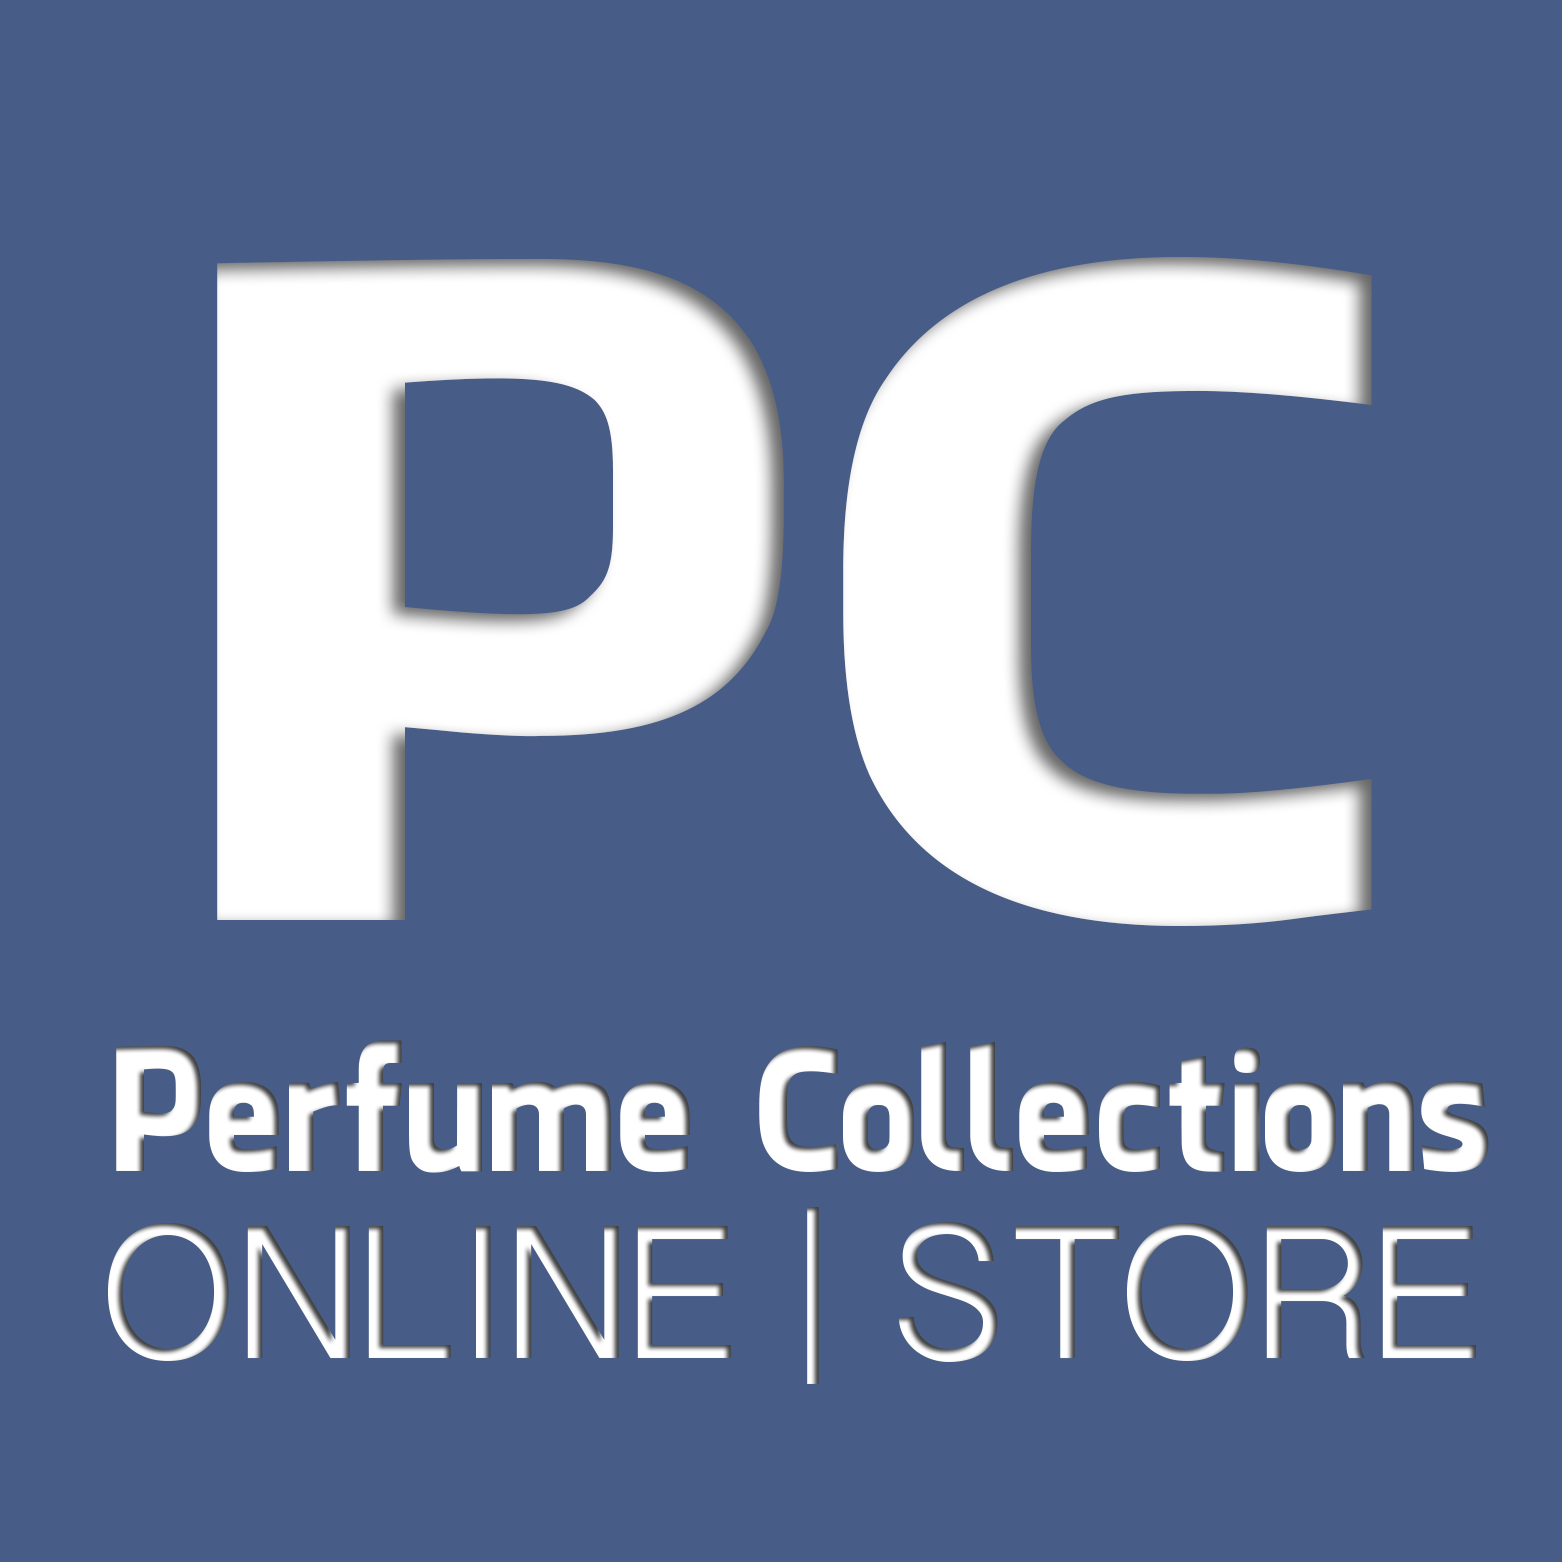 Perfume Collections